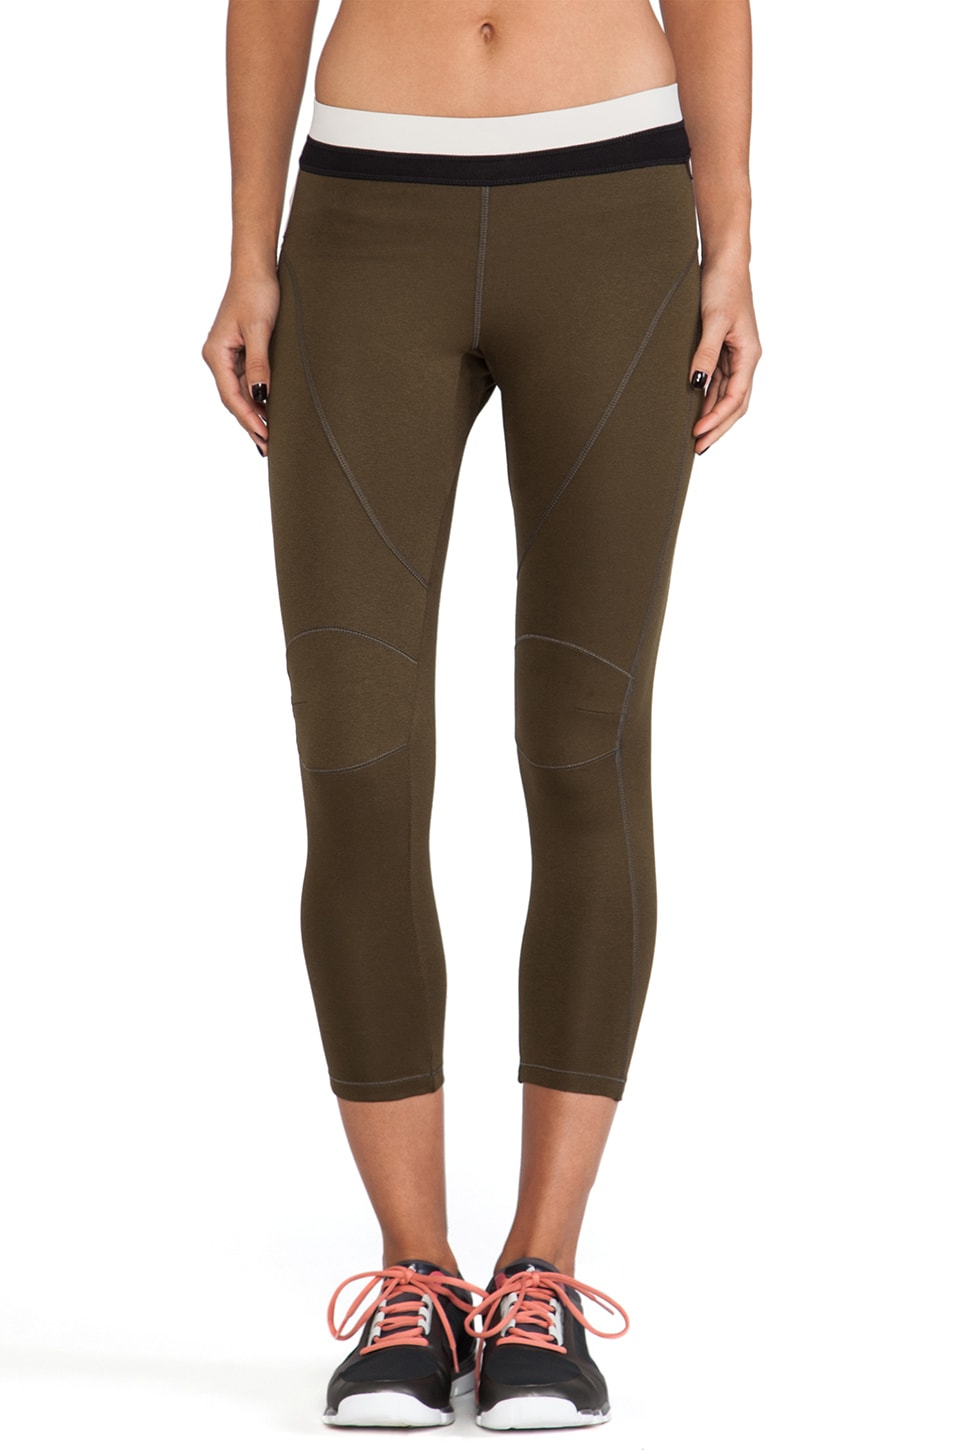 VPL Patella Long Legging in Military